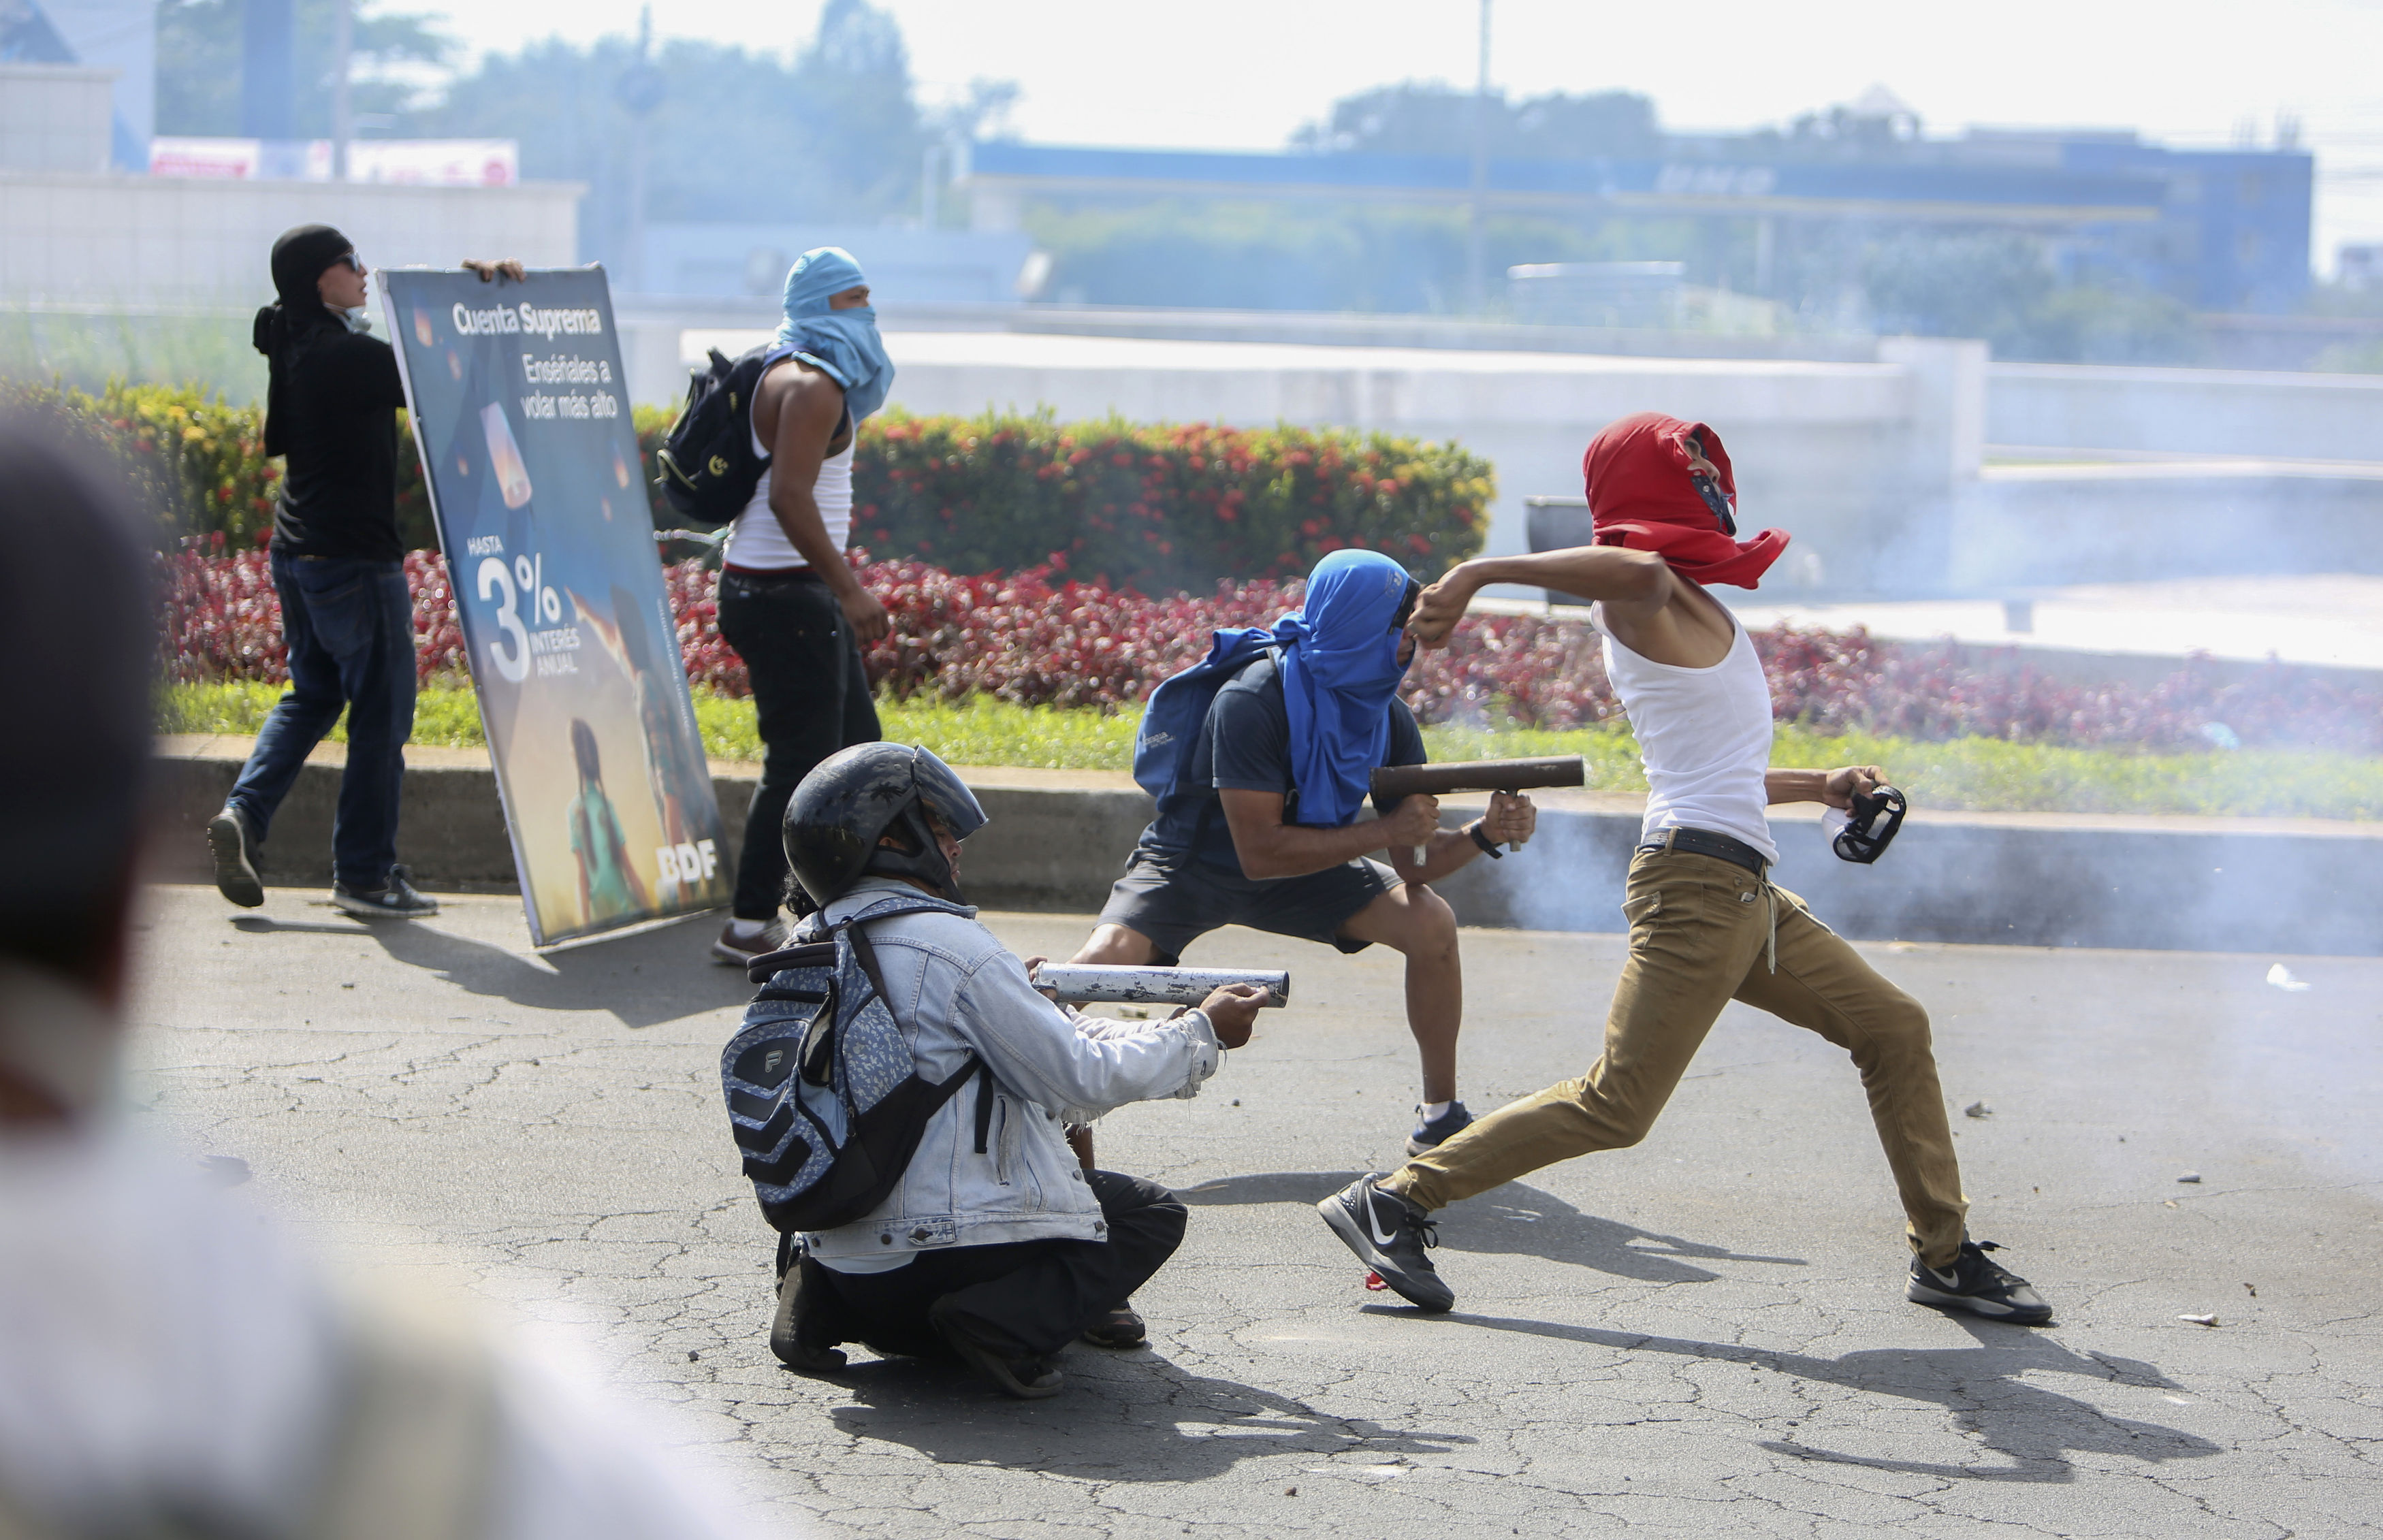 Masked protesters during a third day of violent clashes in Nicaragua (Alfredo Zuniga/AP)